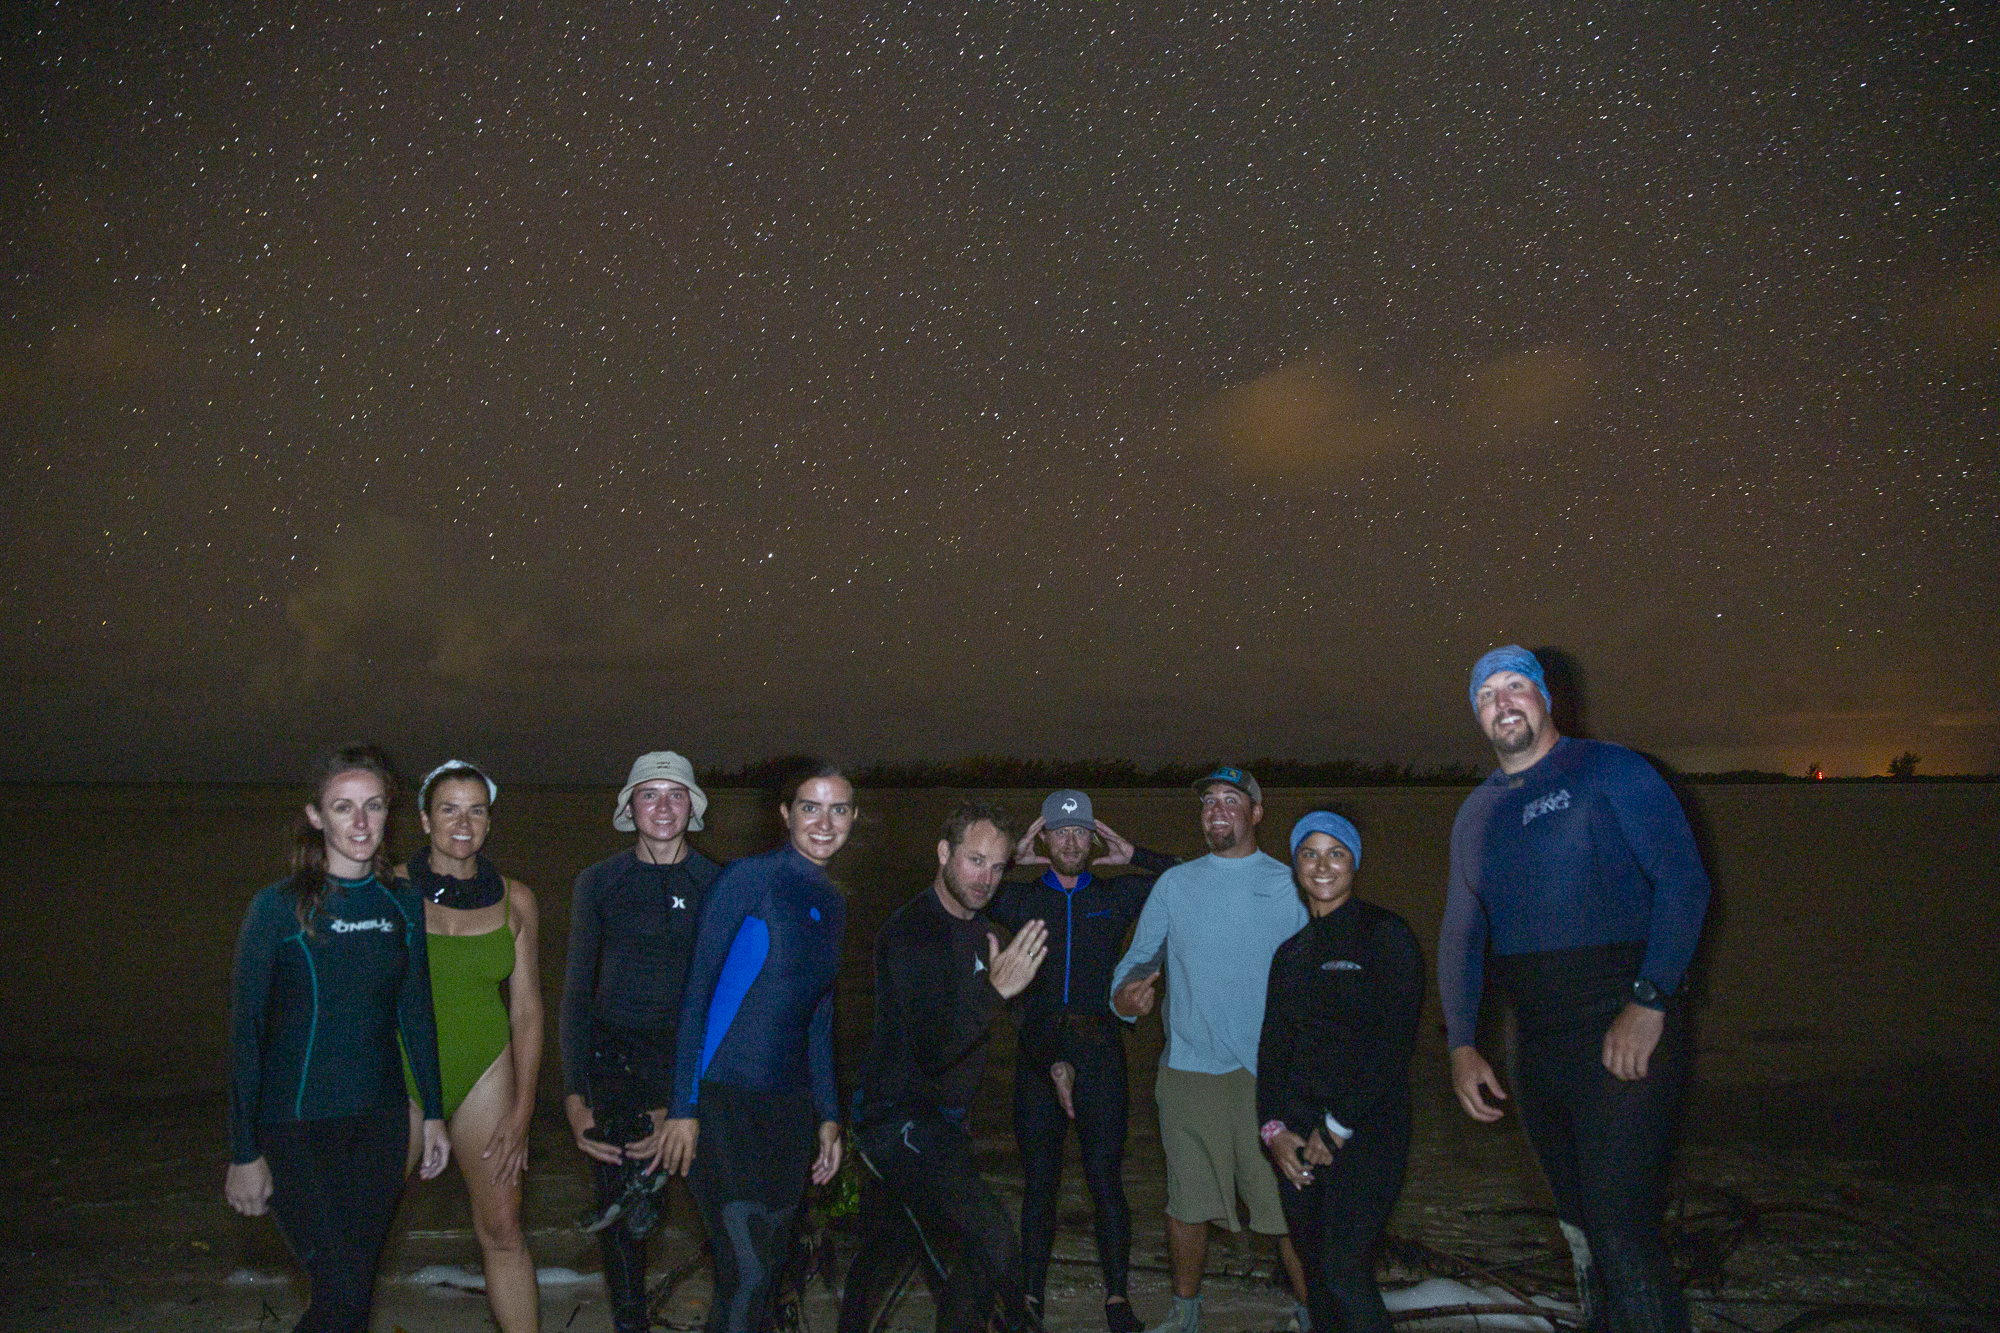 In between checks the team took a group photo under the incredible sky and enjoyed a few laughs and snacks.